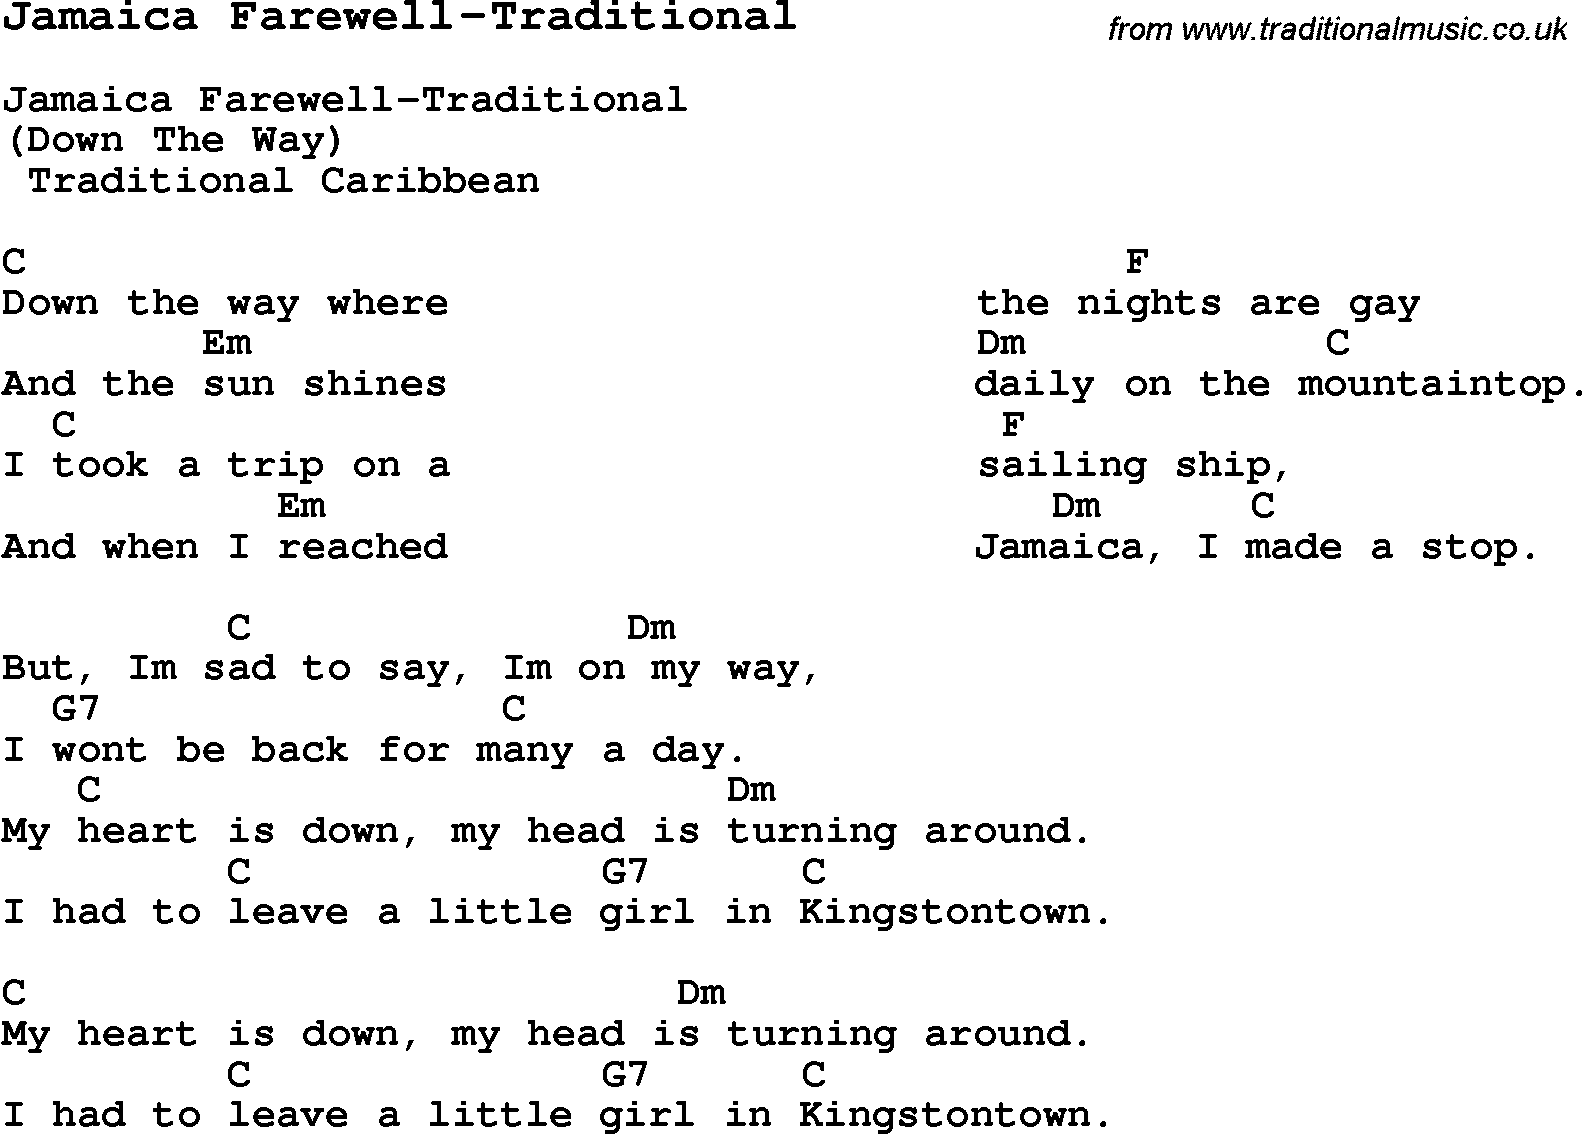 Summer camp song jamaica farewell traditional with lyrics and summer camp song jamaica farewell traditional with lyrics and chords for ukulele hexwebz Image collections